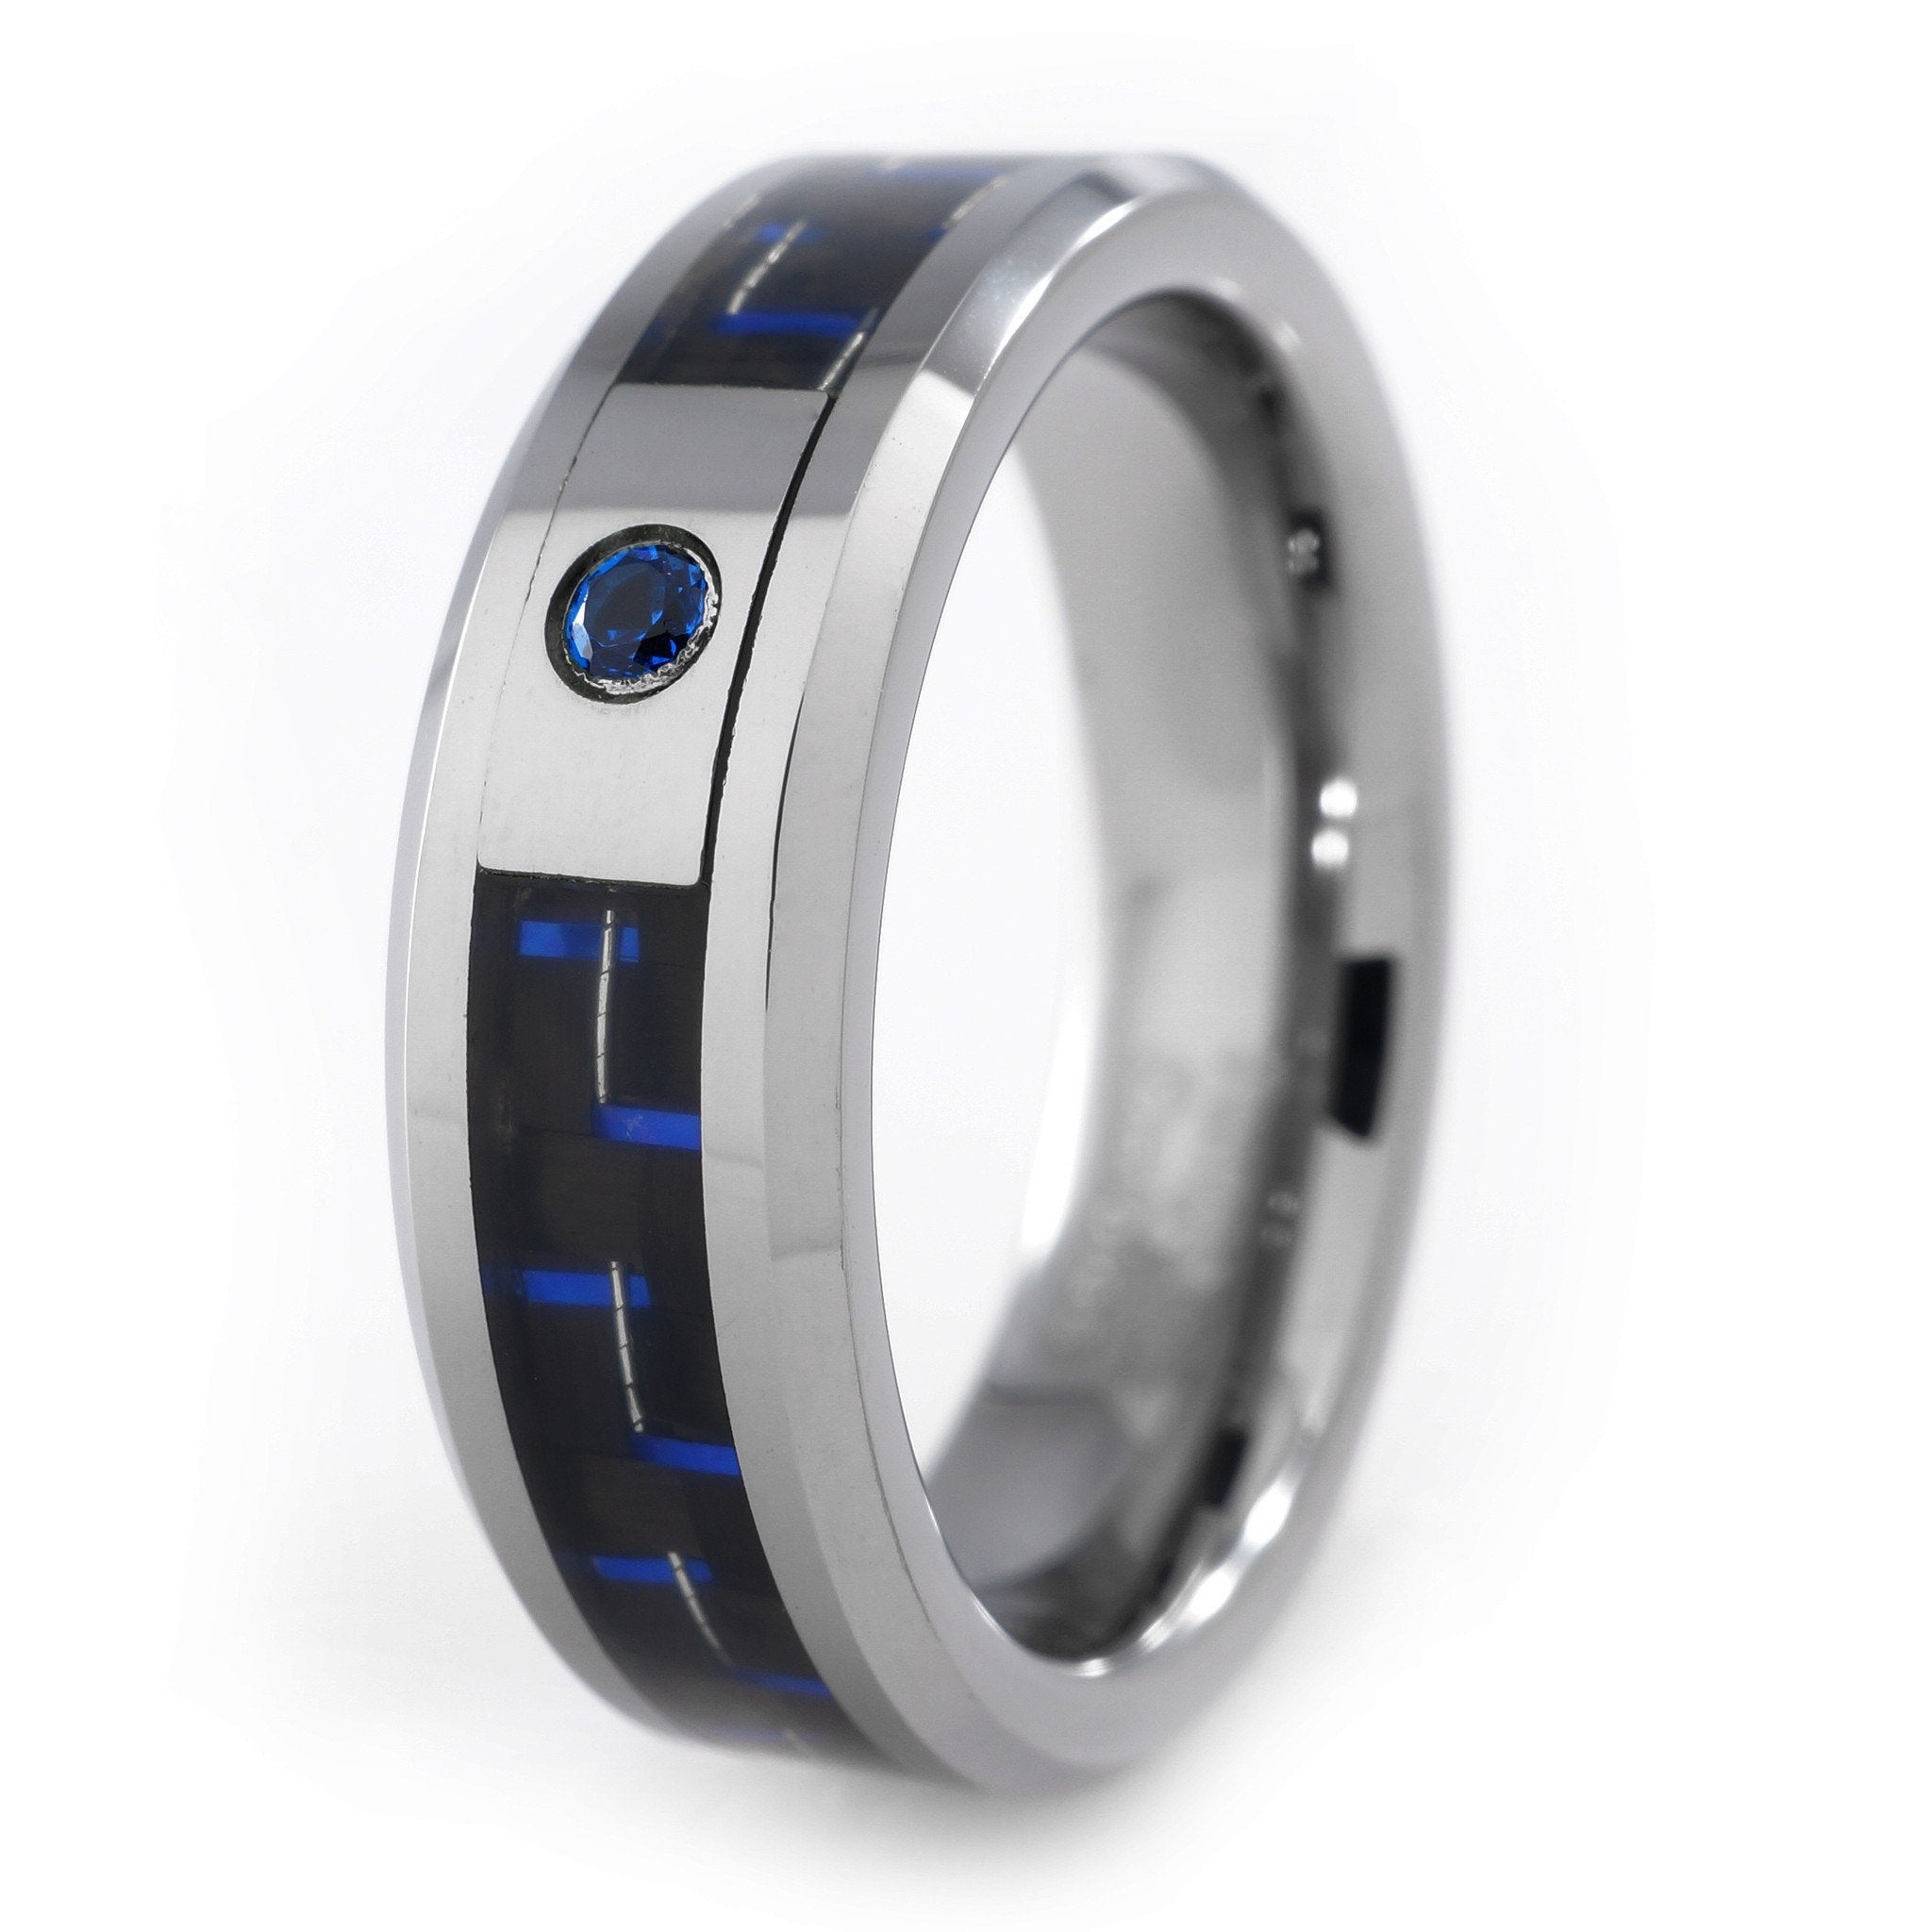 carbon wedding diamond tungsten itm mens inlay blue size ring band rings fiber